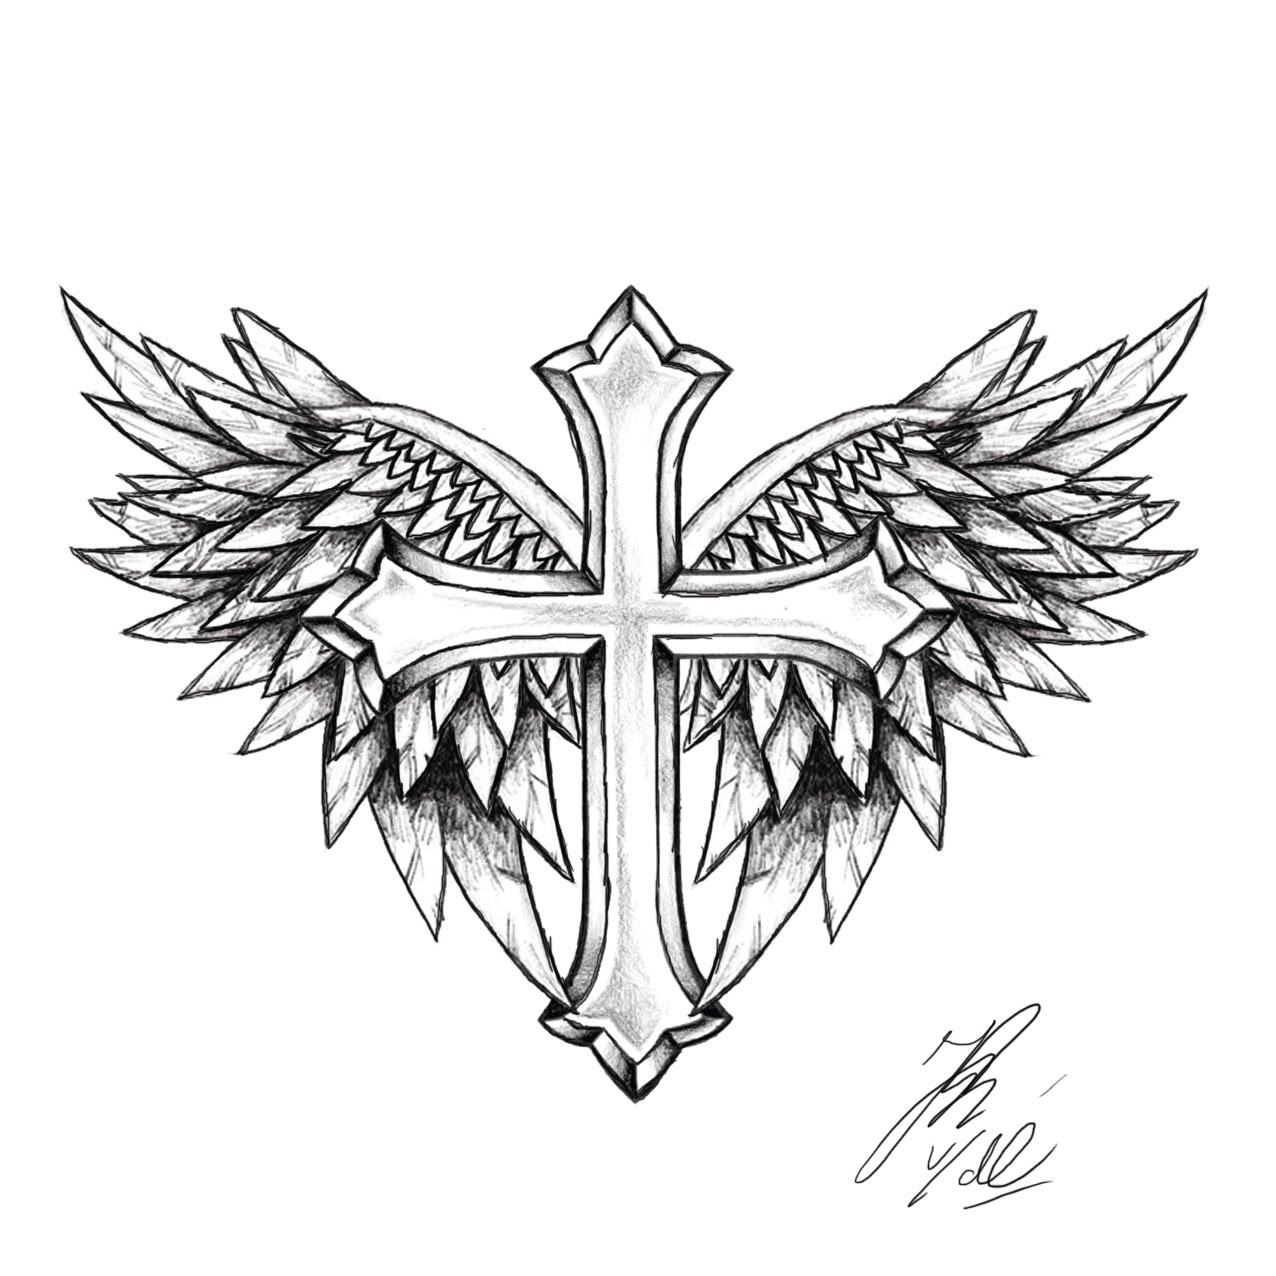 Religious Tattoo Drawing At Getdrawings Free For Personal Use